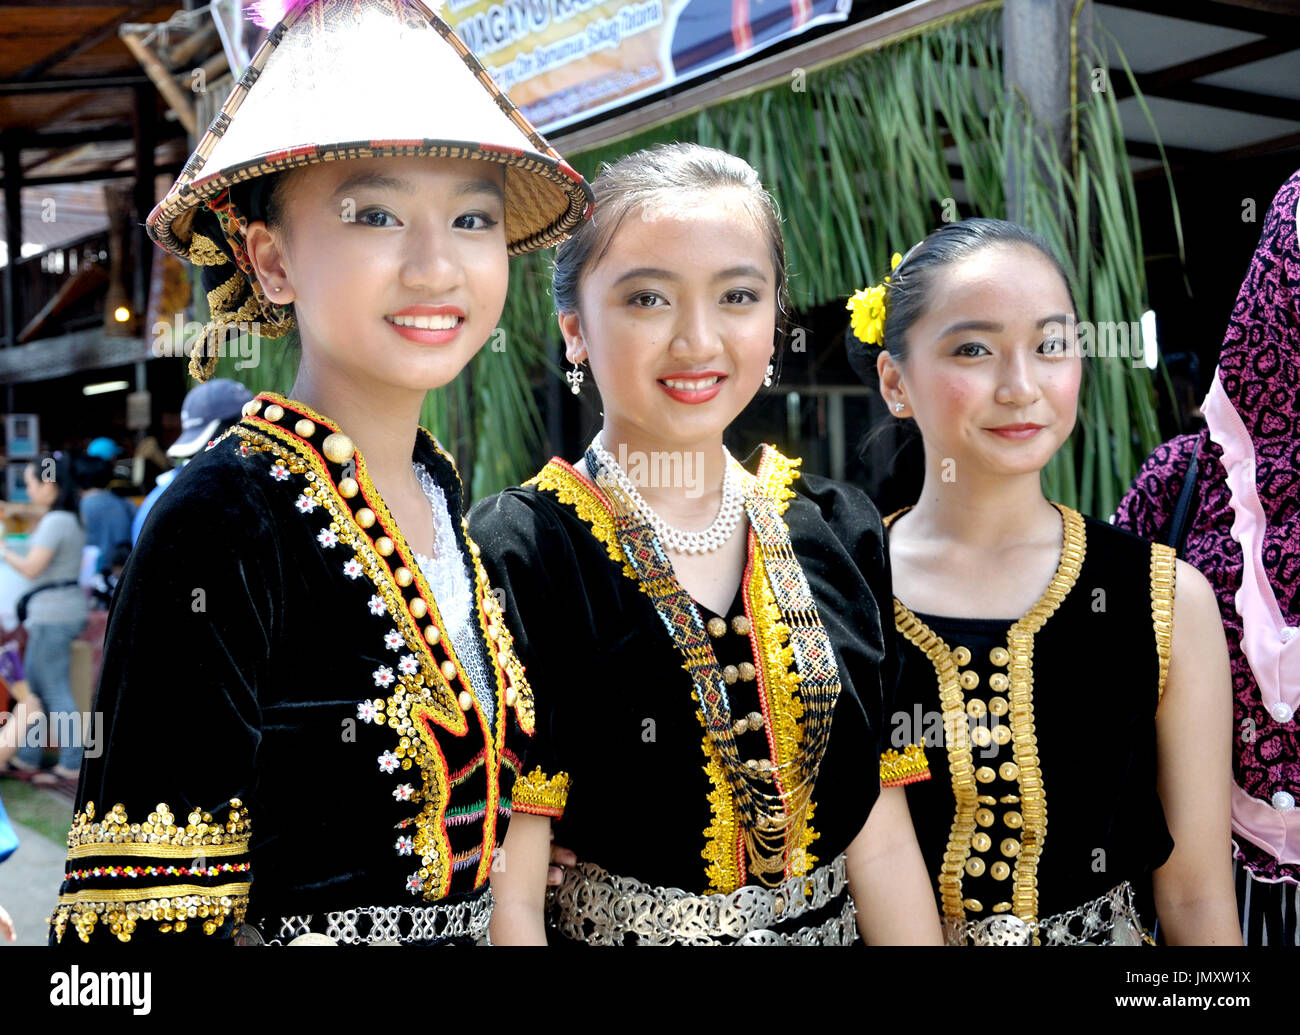 KOTA KINABALU, MALAYSIA - MAY 30, 2015: Young girls from Kadazandusun tribe in their traditional costume during the Sabah State Harvest festival celeb - Stock Image